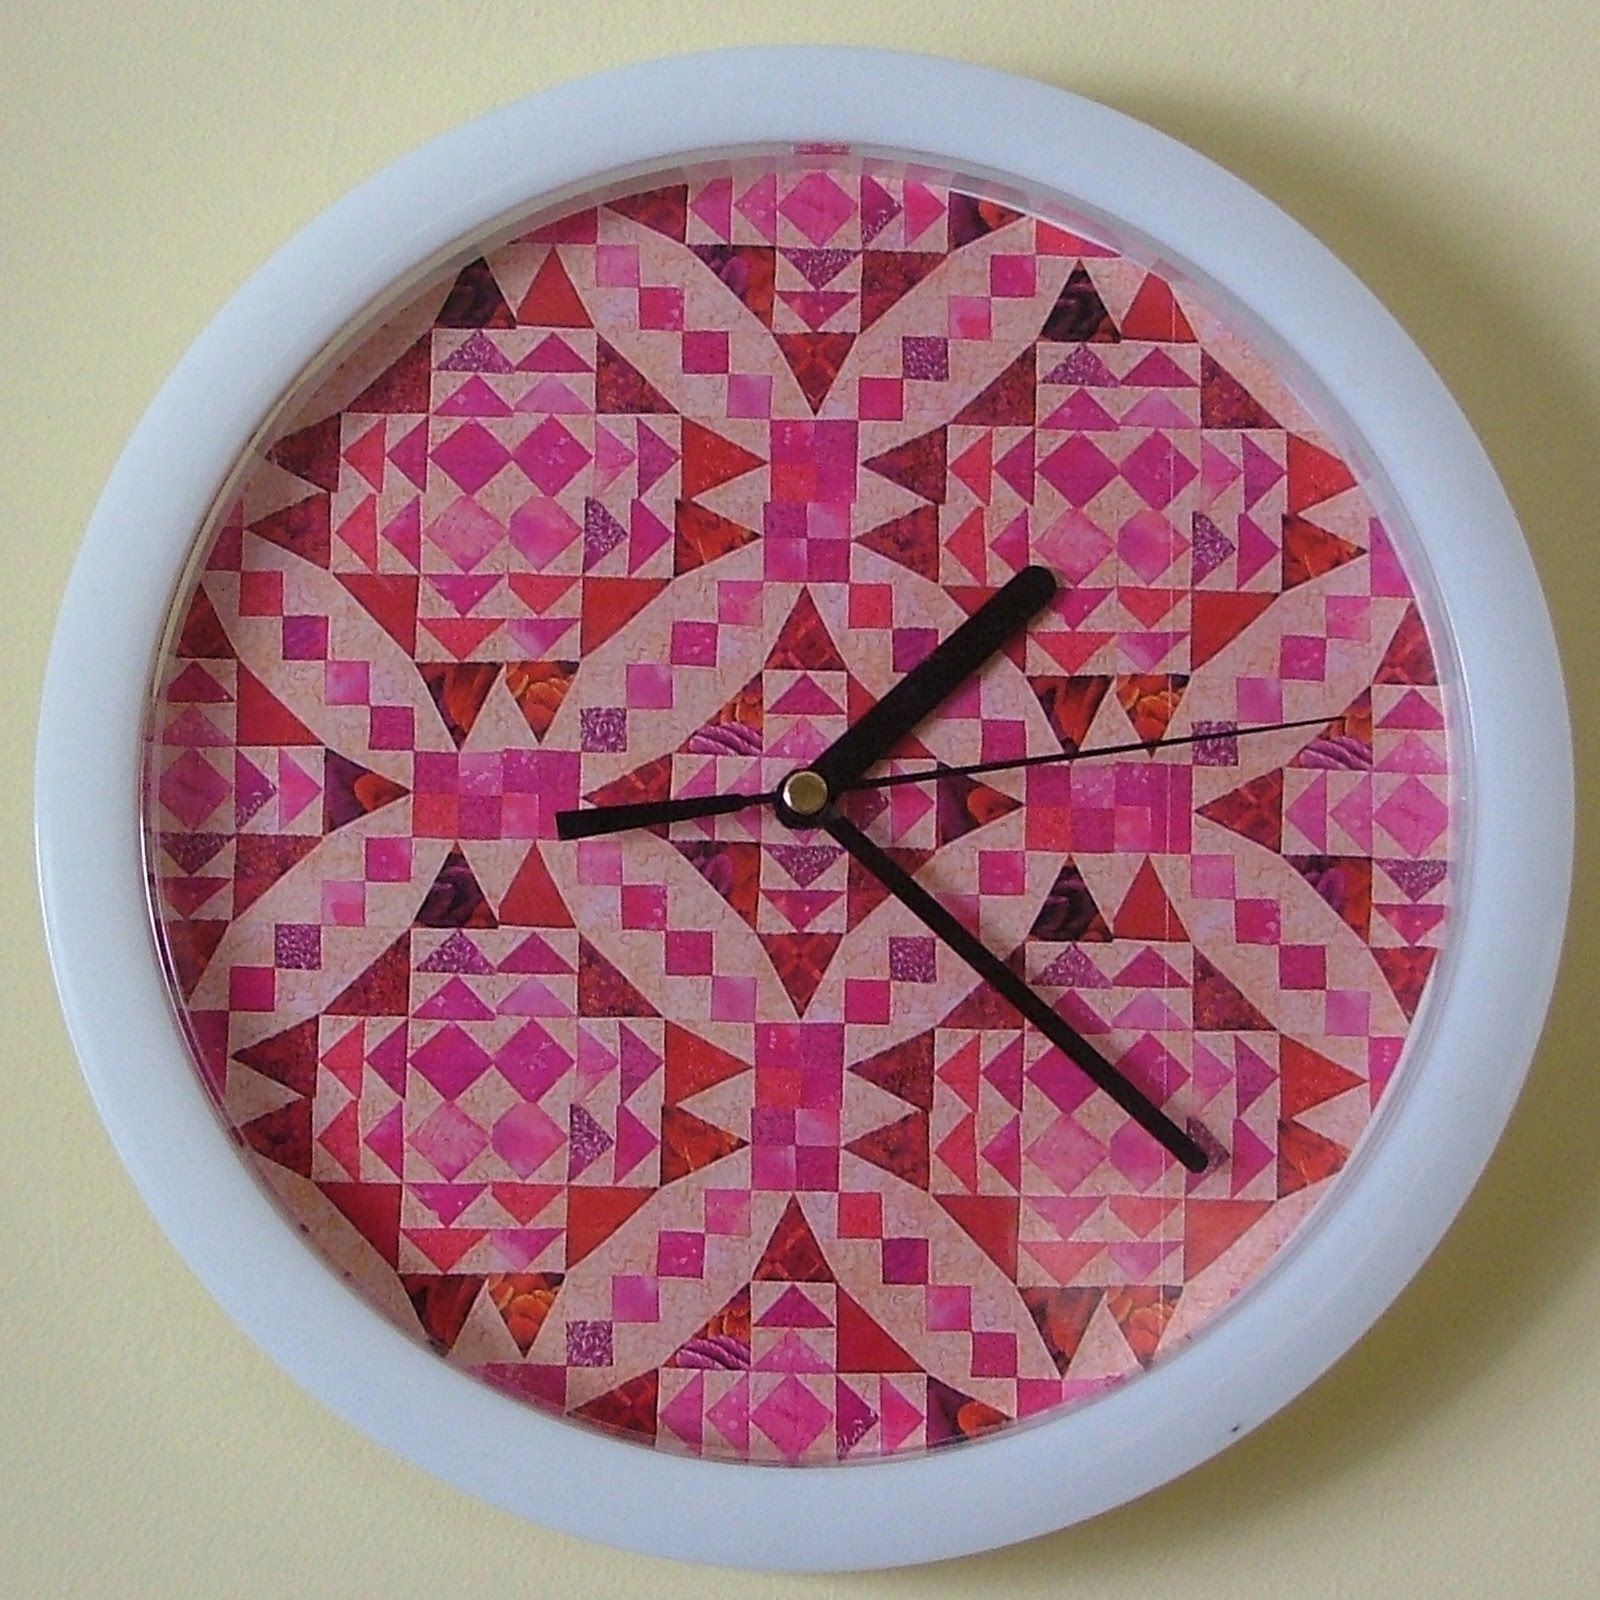 an old clock from Lincraft and some patchy wrapping paper. Perfect for the studio!